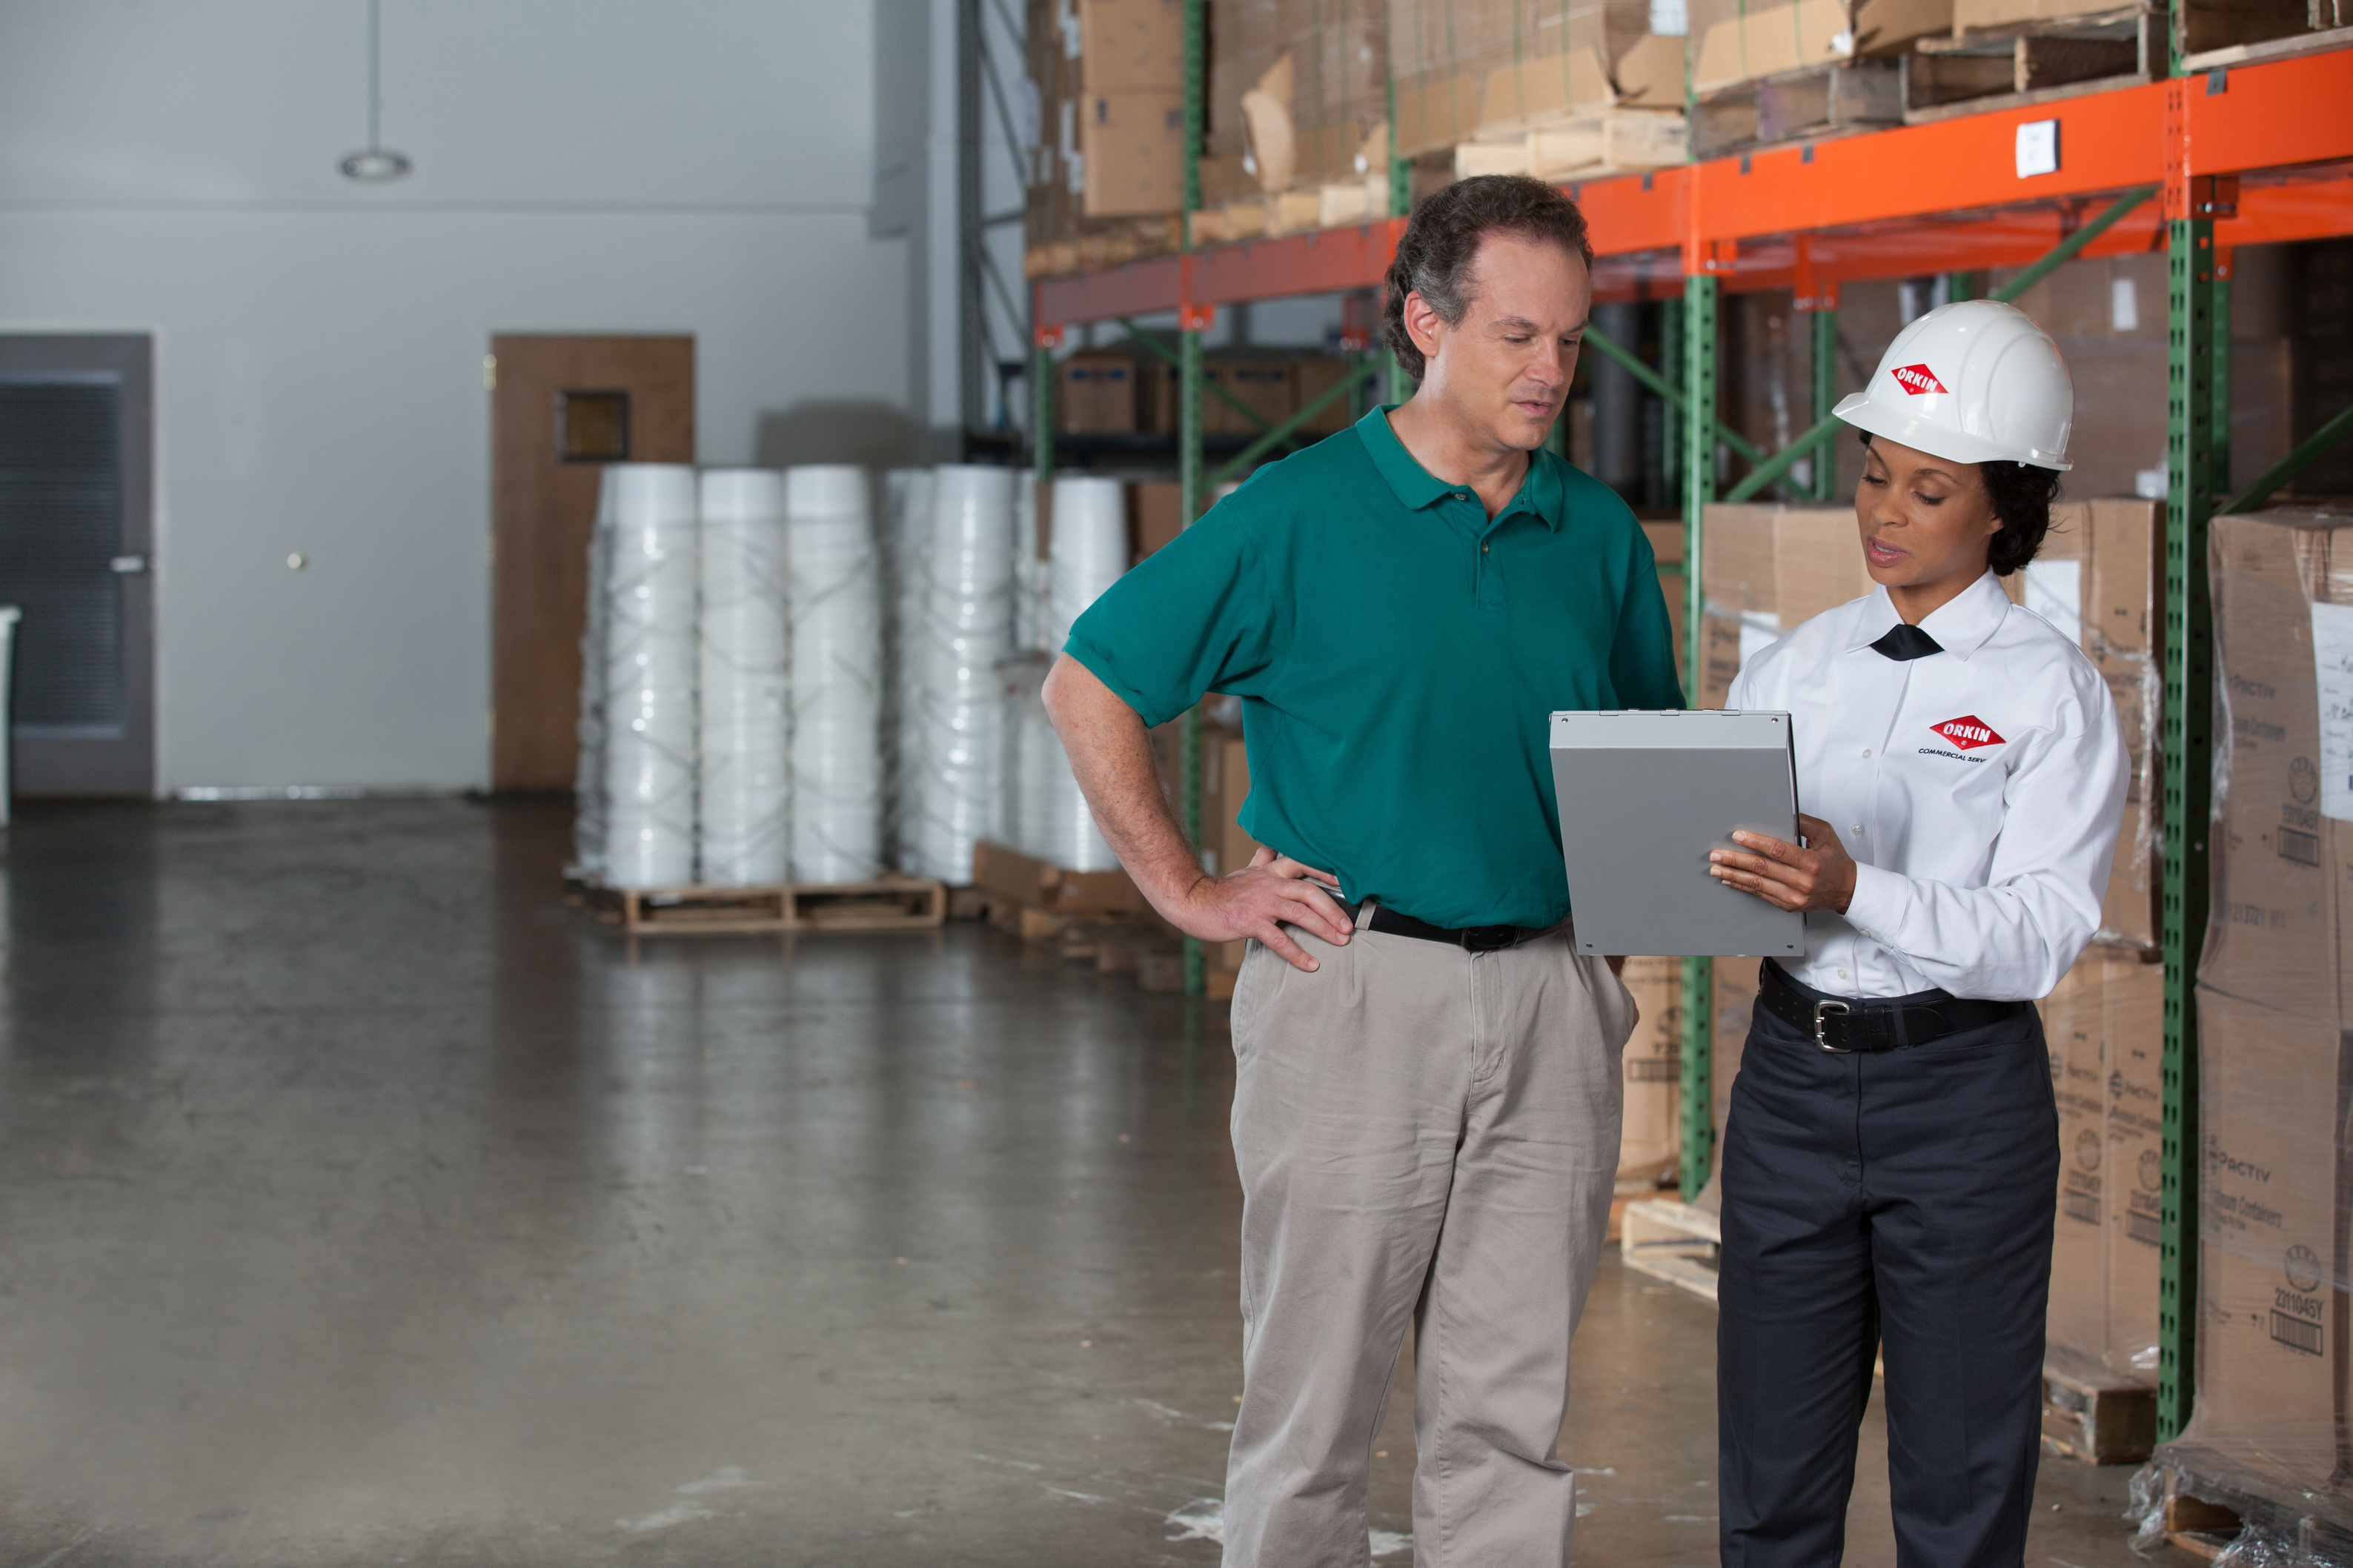 Checklist: Working the Bugs Out of the Supply Chain